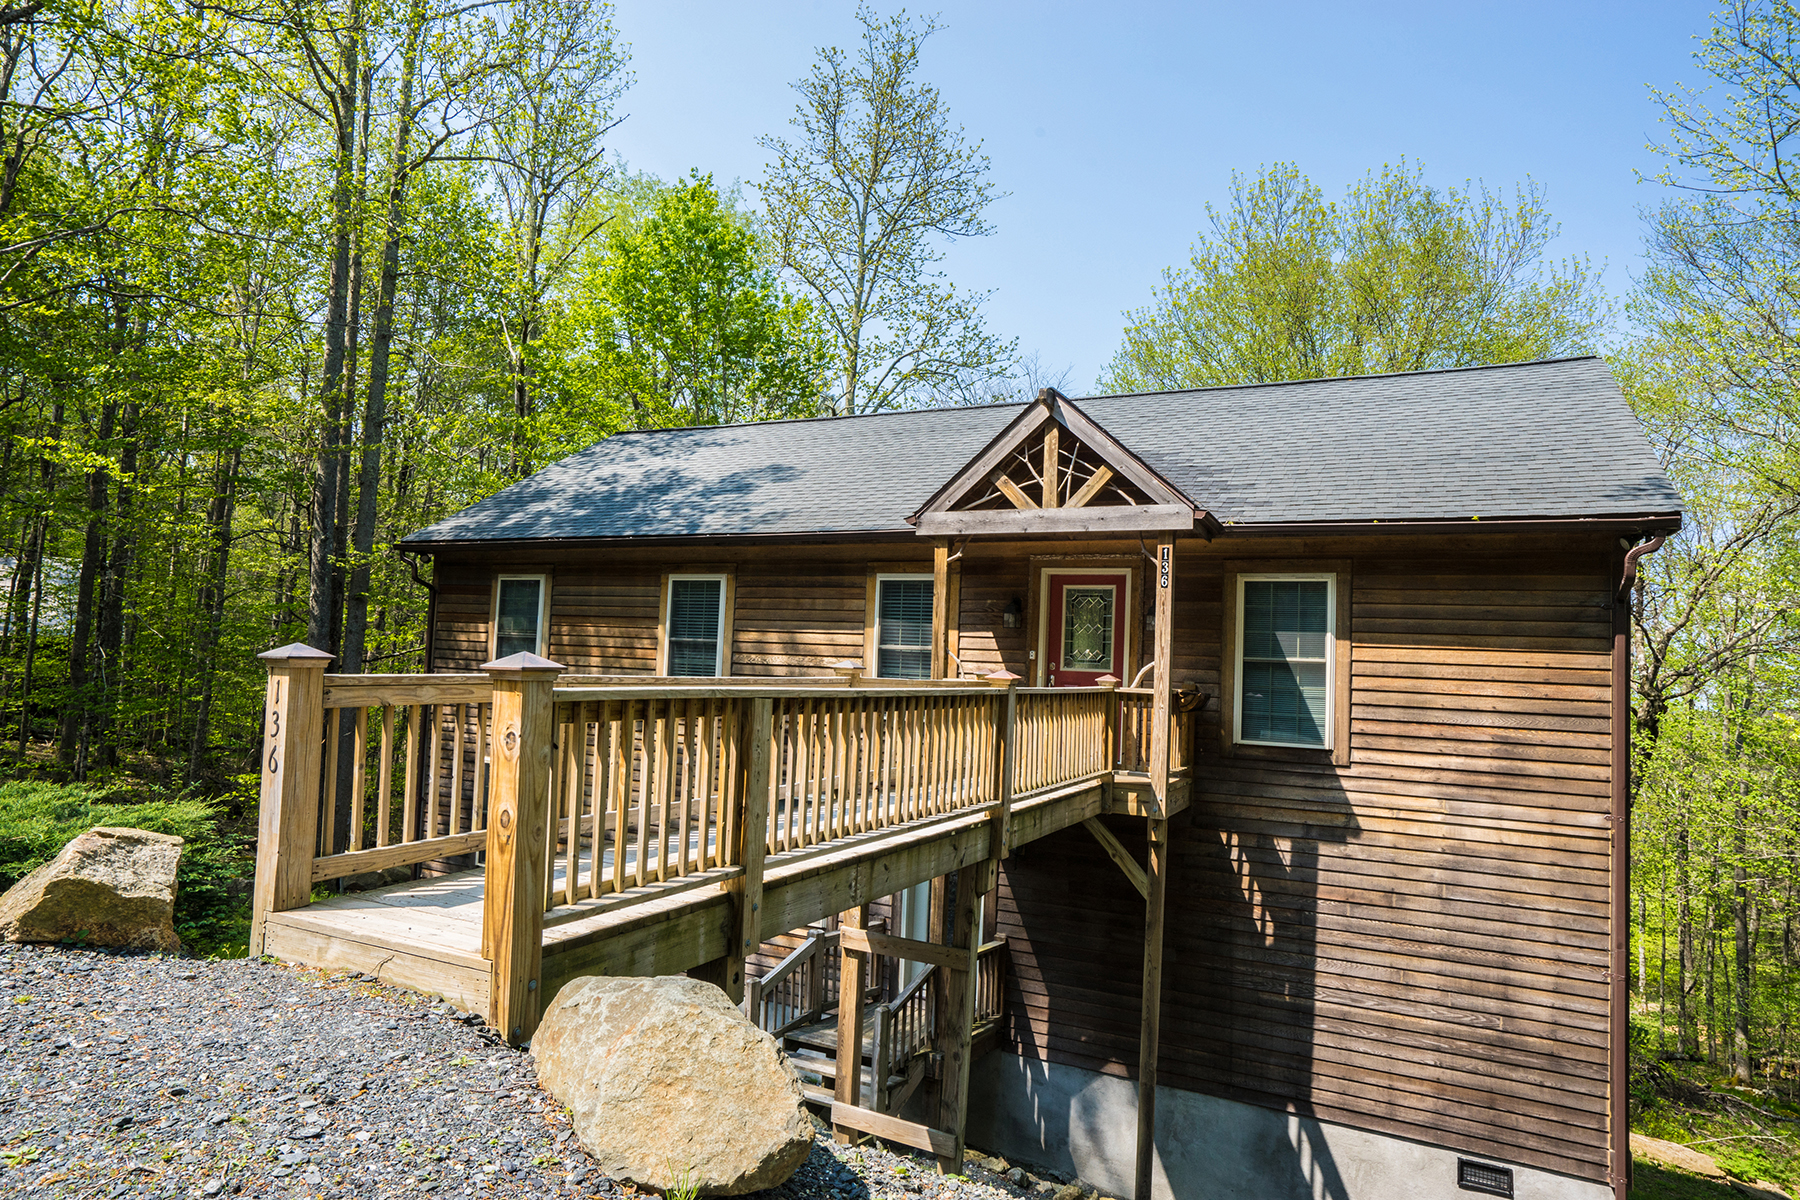 Single Family Home for Sale at Beech Mountain - Creek Ridge 136 W West Pond Creek Rd Rd Beech Mountain, North Carolina, 28604 United States